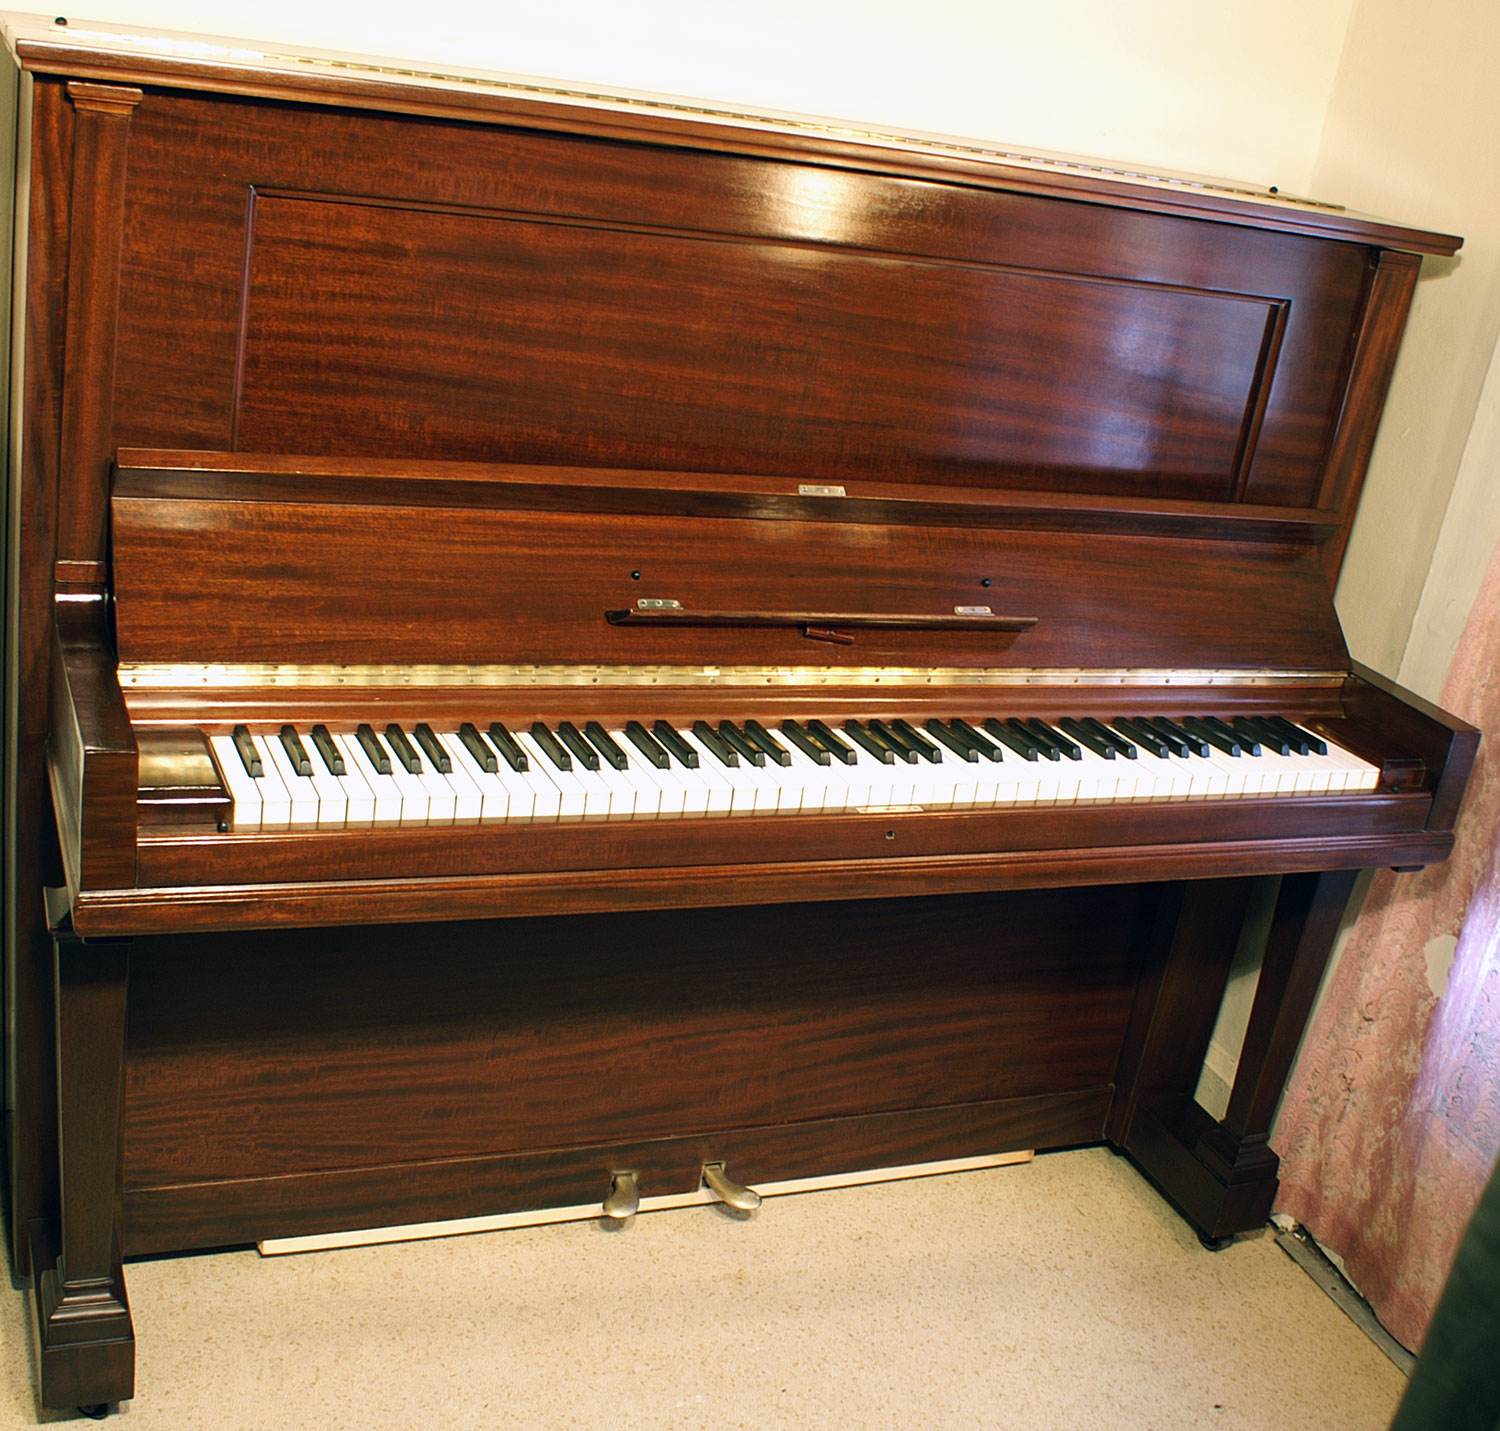 (SOLD) Steinway (SOLD)Upright Piano Mahogany 52